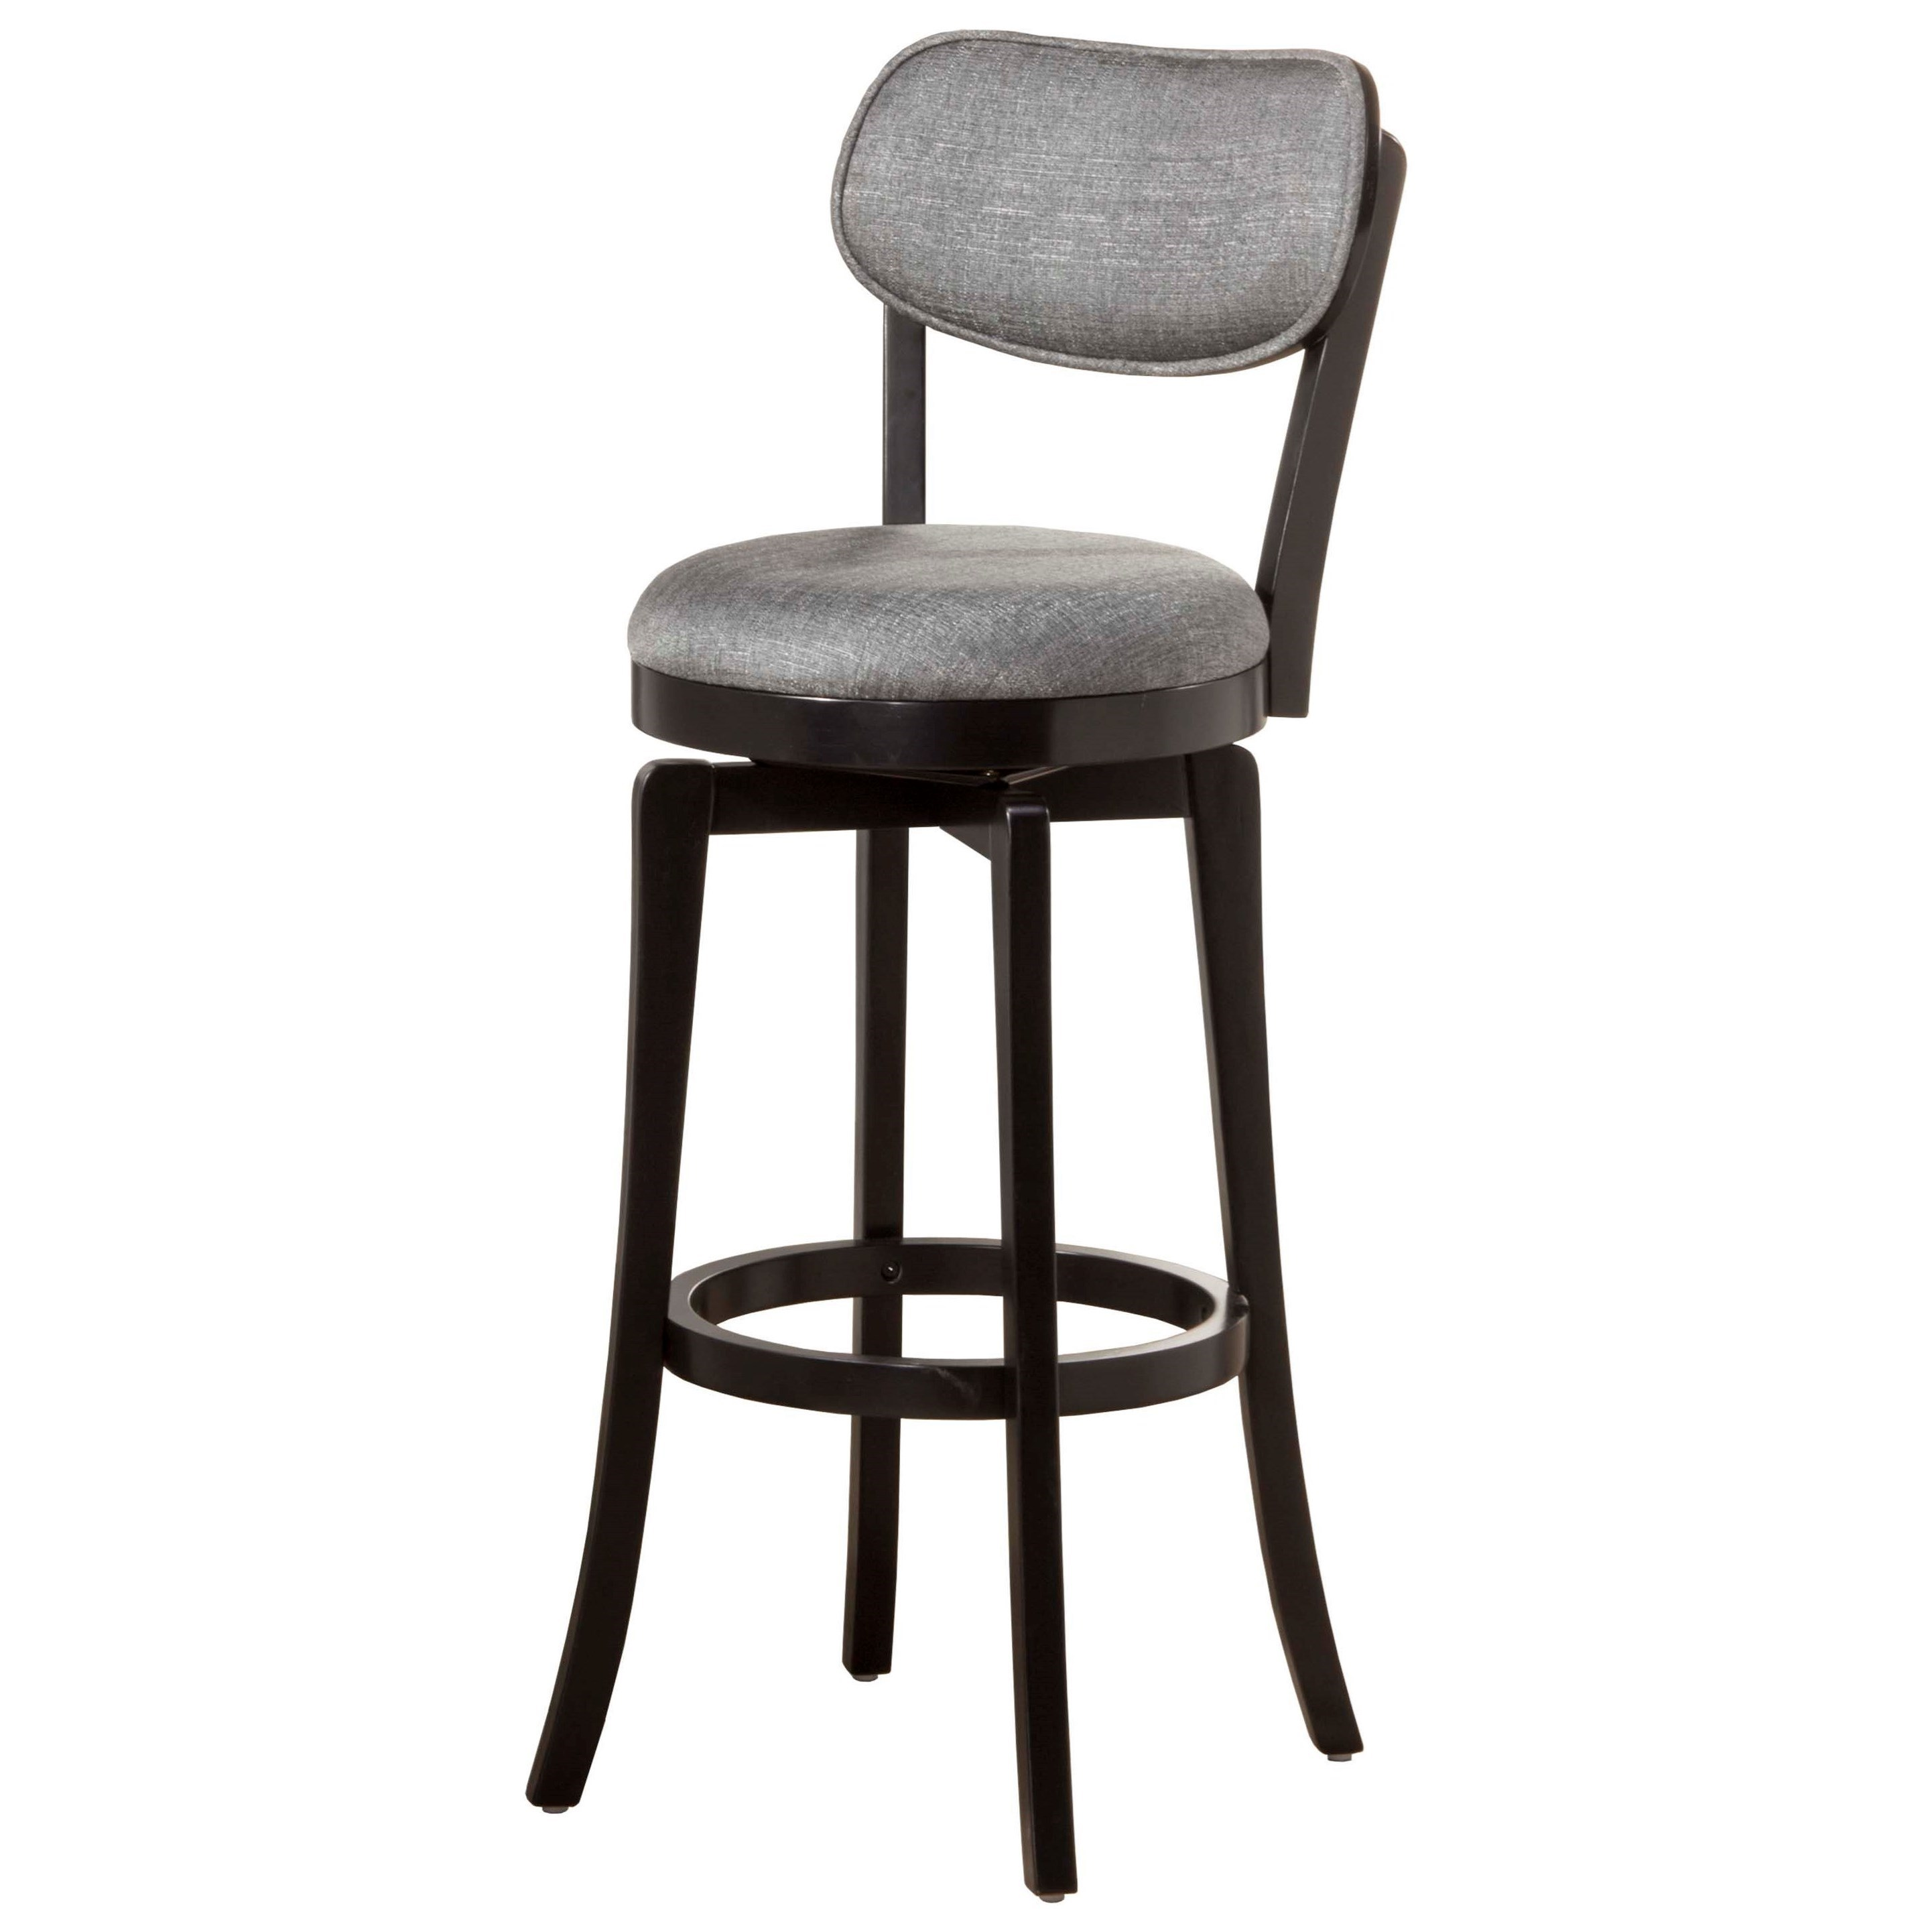 Image of: Hillsdale Wood Stools Swivel Bar Stool With Gray Full Back Rest Furniture Barn Bar Stools